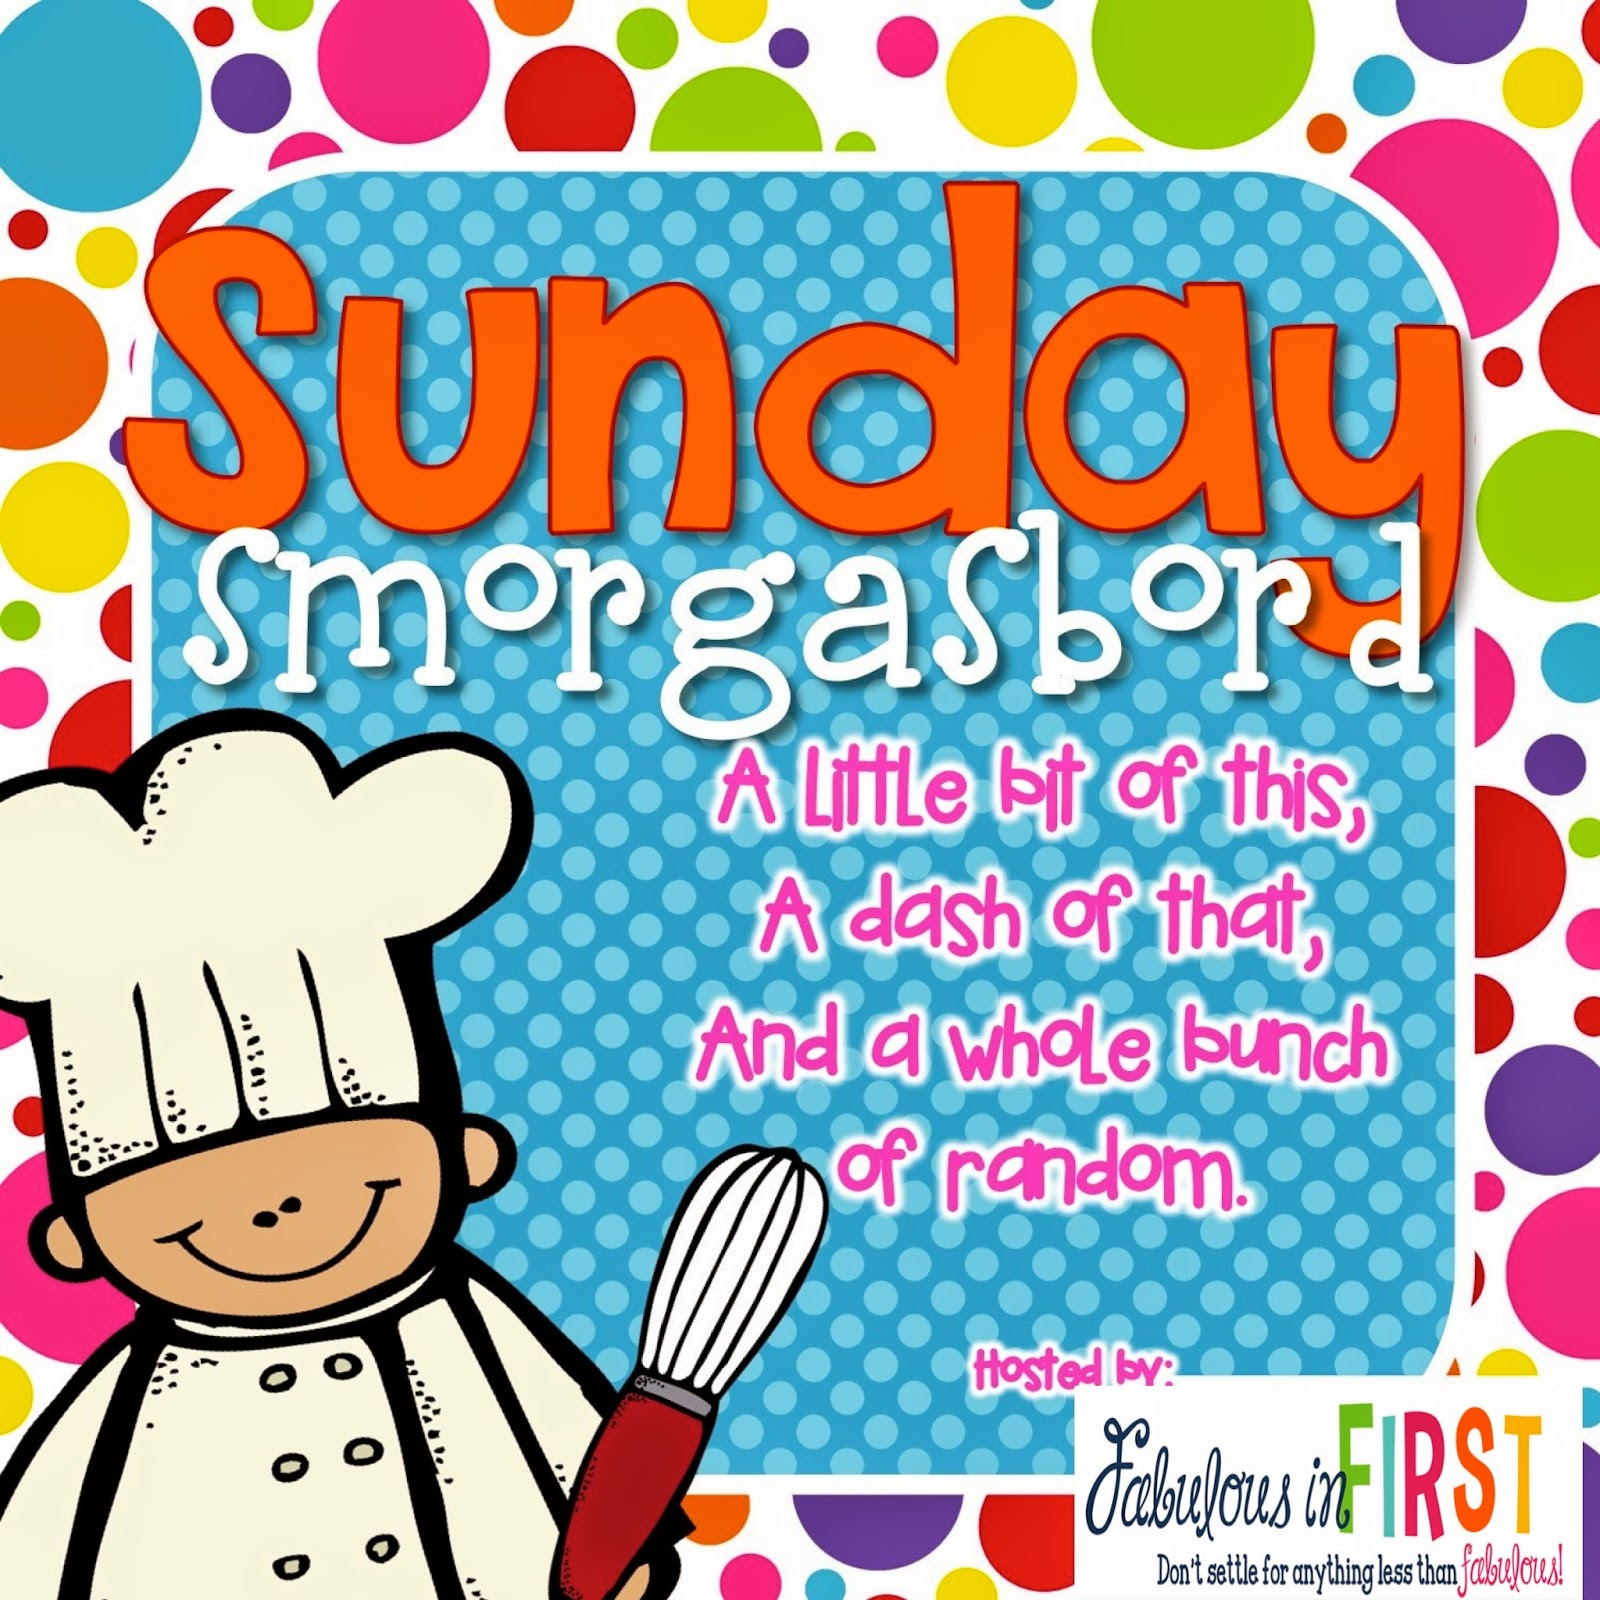 http://fabulousinfirst.blogspot.com/2014/07/sunday-smorgasbord-july-5-2014.html